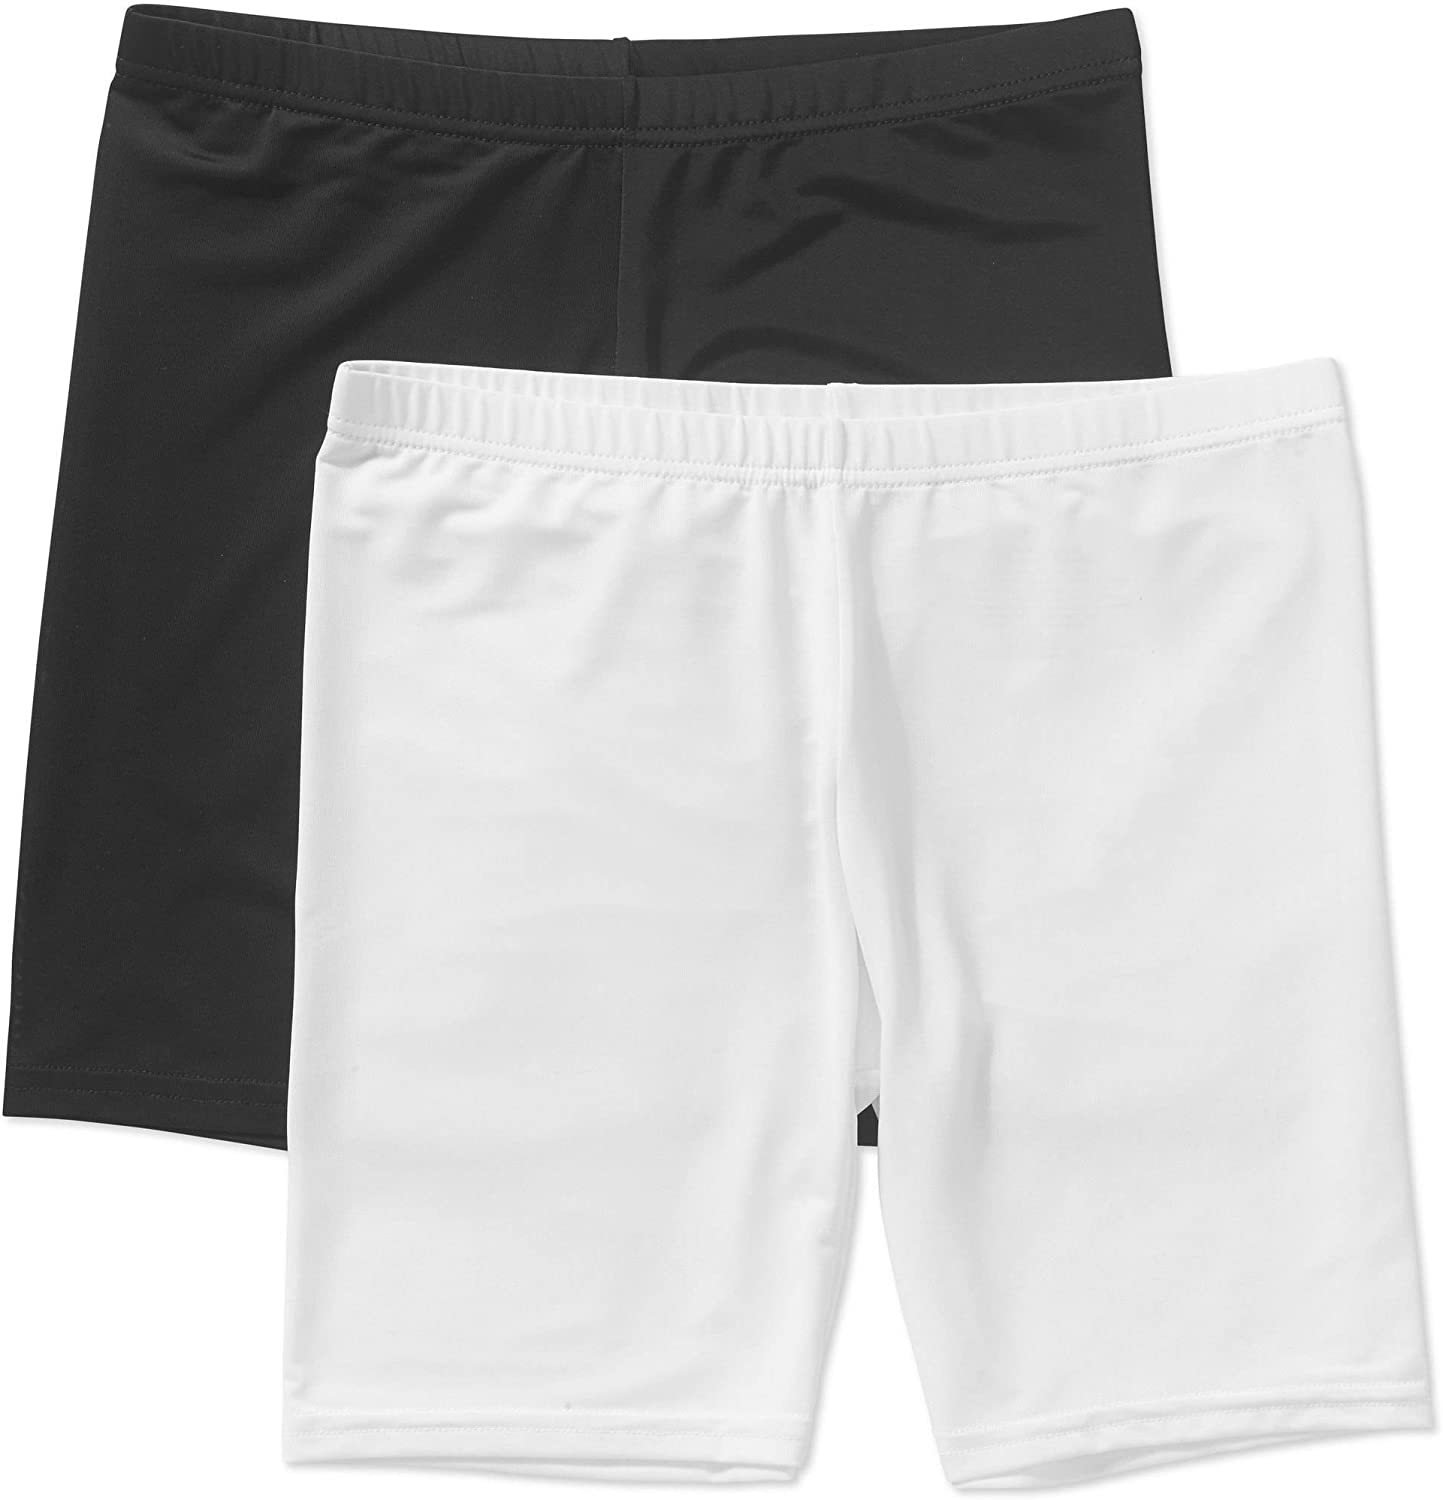 Faded Glory Girls' 2-Pack Covered Waistband Very popular Selling rankings Underskirt B - Panty